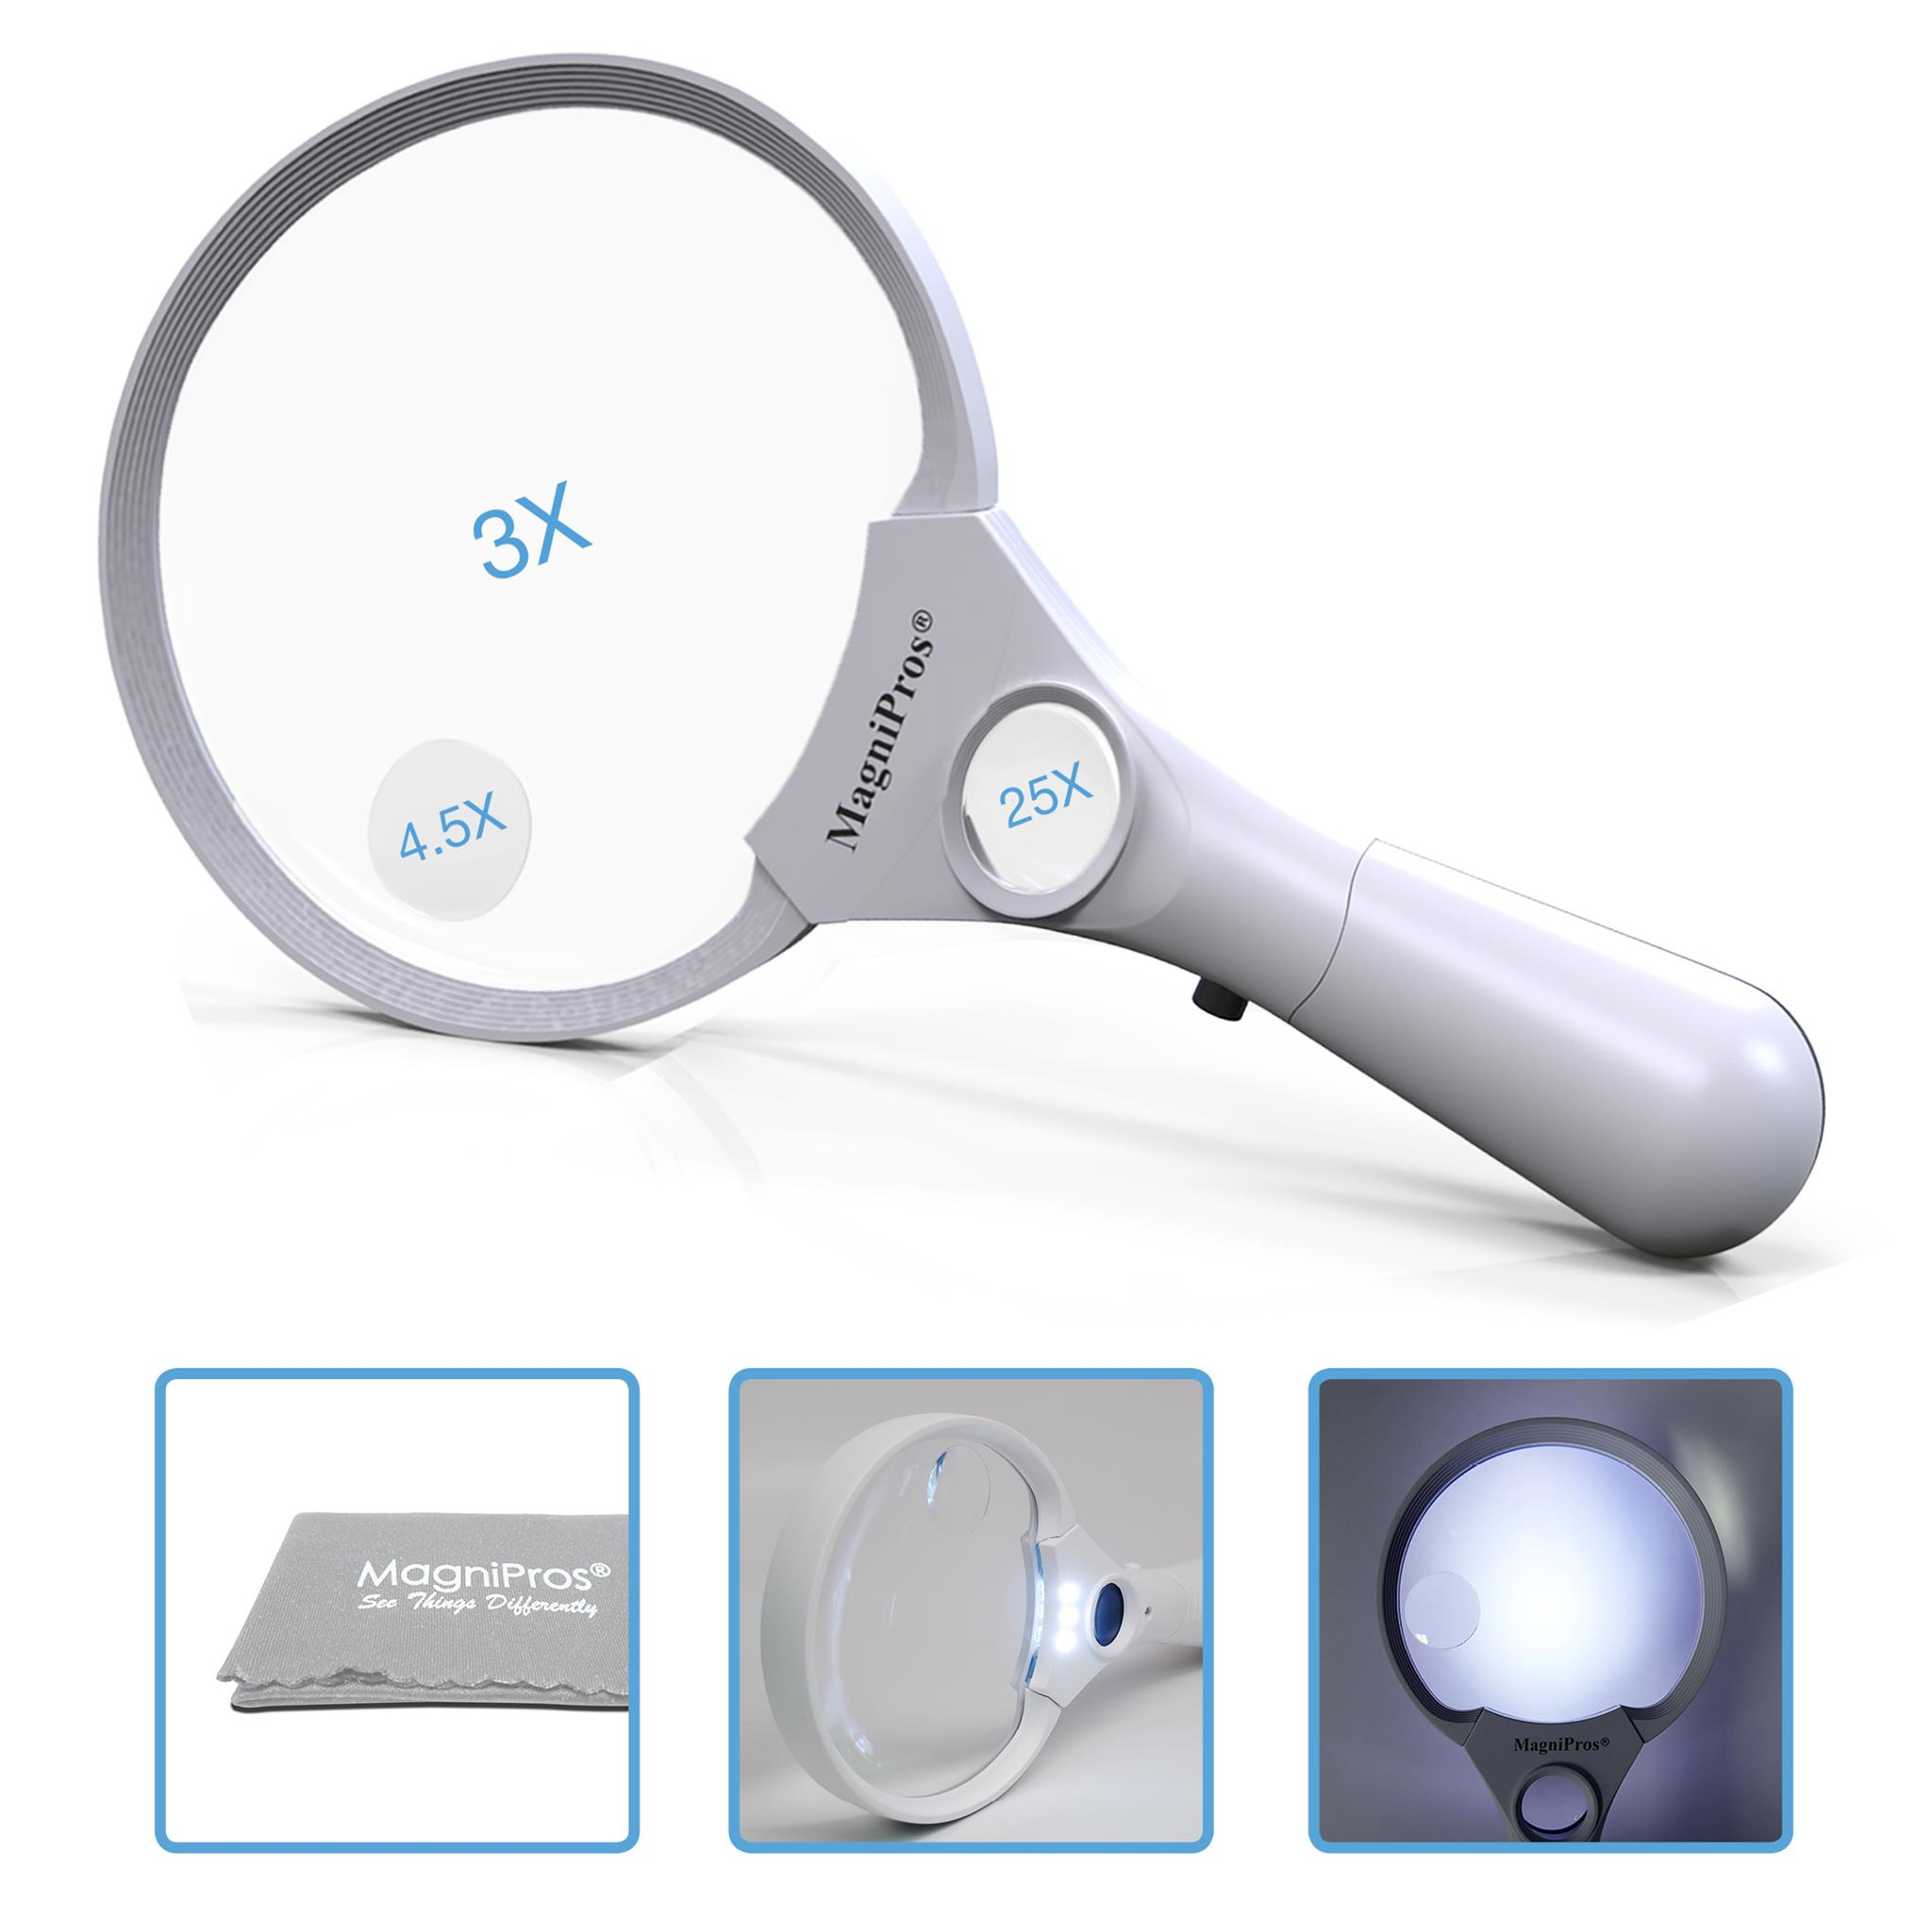 MagniPros 3 Ultra Bright LED Lights 3X 4.5X 25X Power Handheld Reading Magnifying Glass with Light- Ideal for Reading Small Prints, Map, Coins, Inspection and Jewelry Loupe